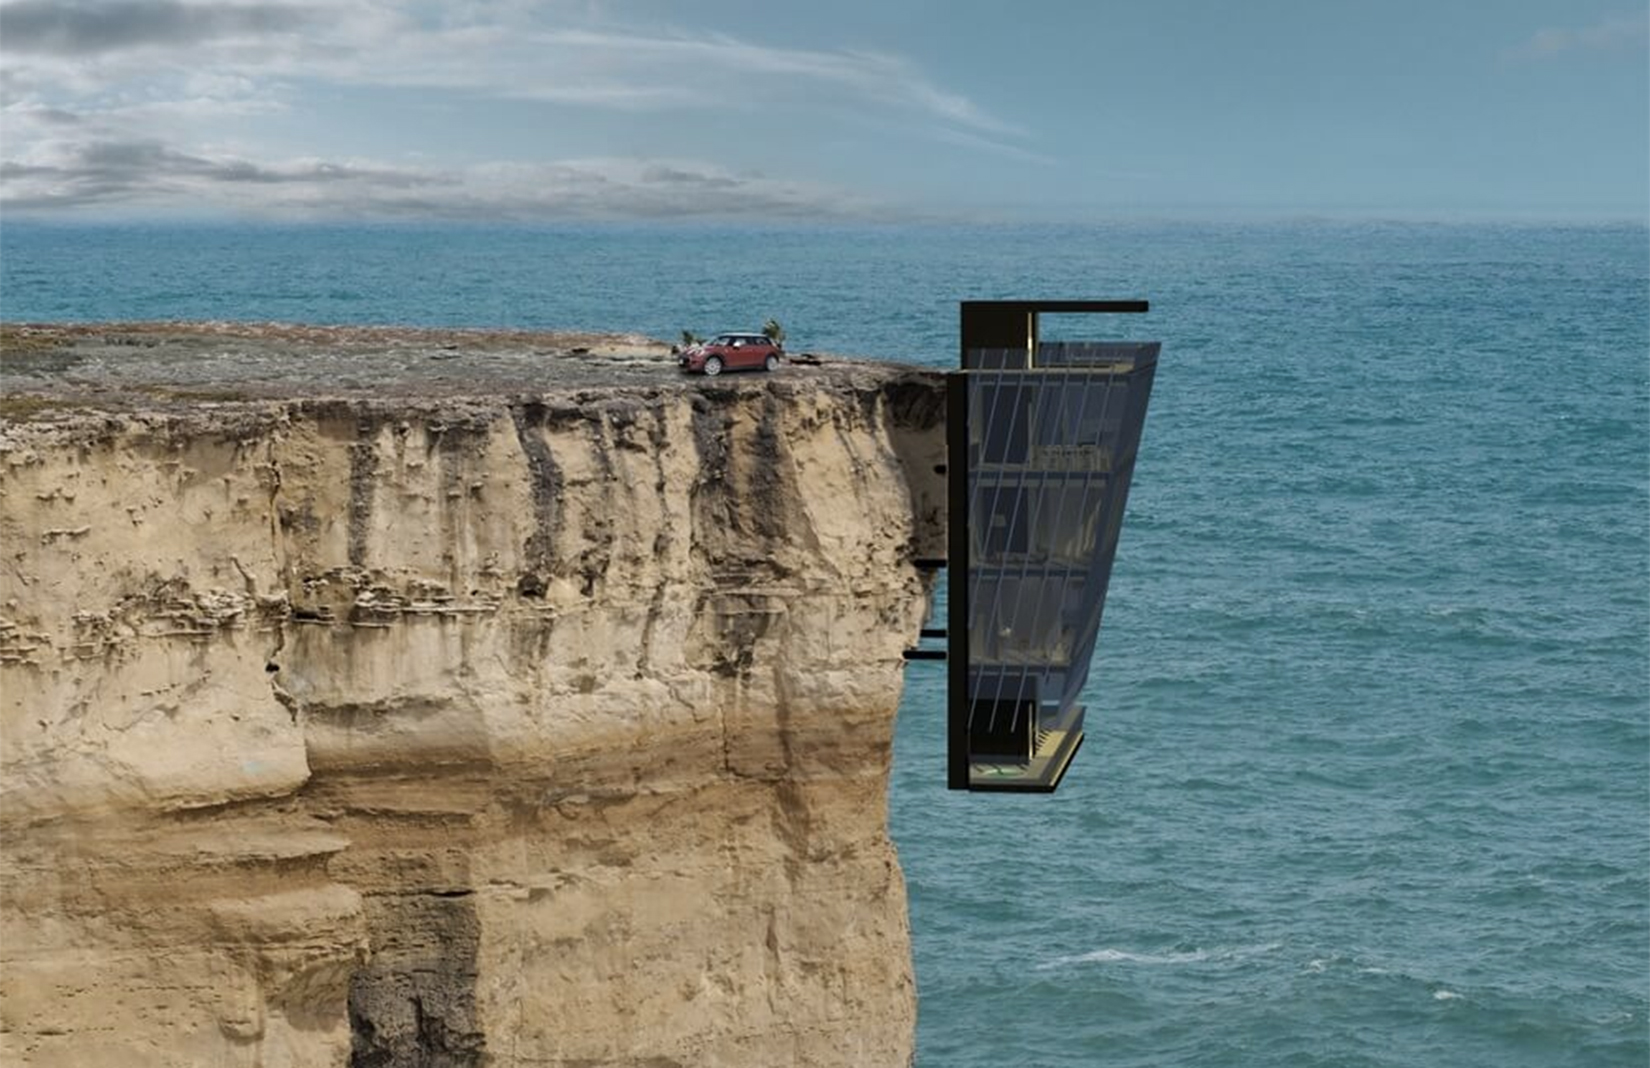 Modscape's Cliff House prefab is a parasitic design that appears the dangle over the sea